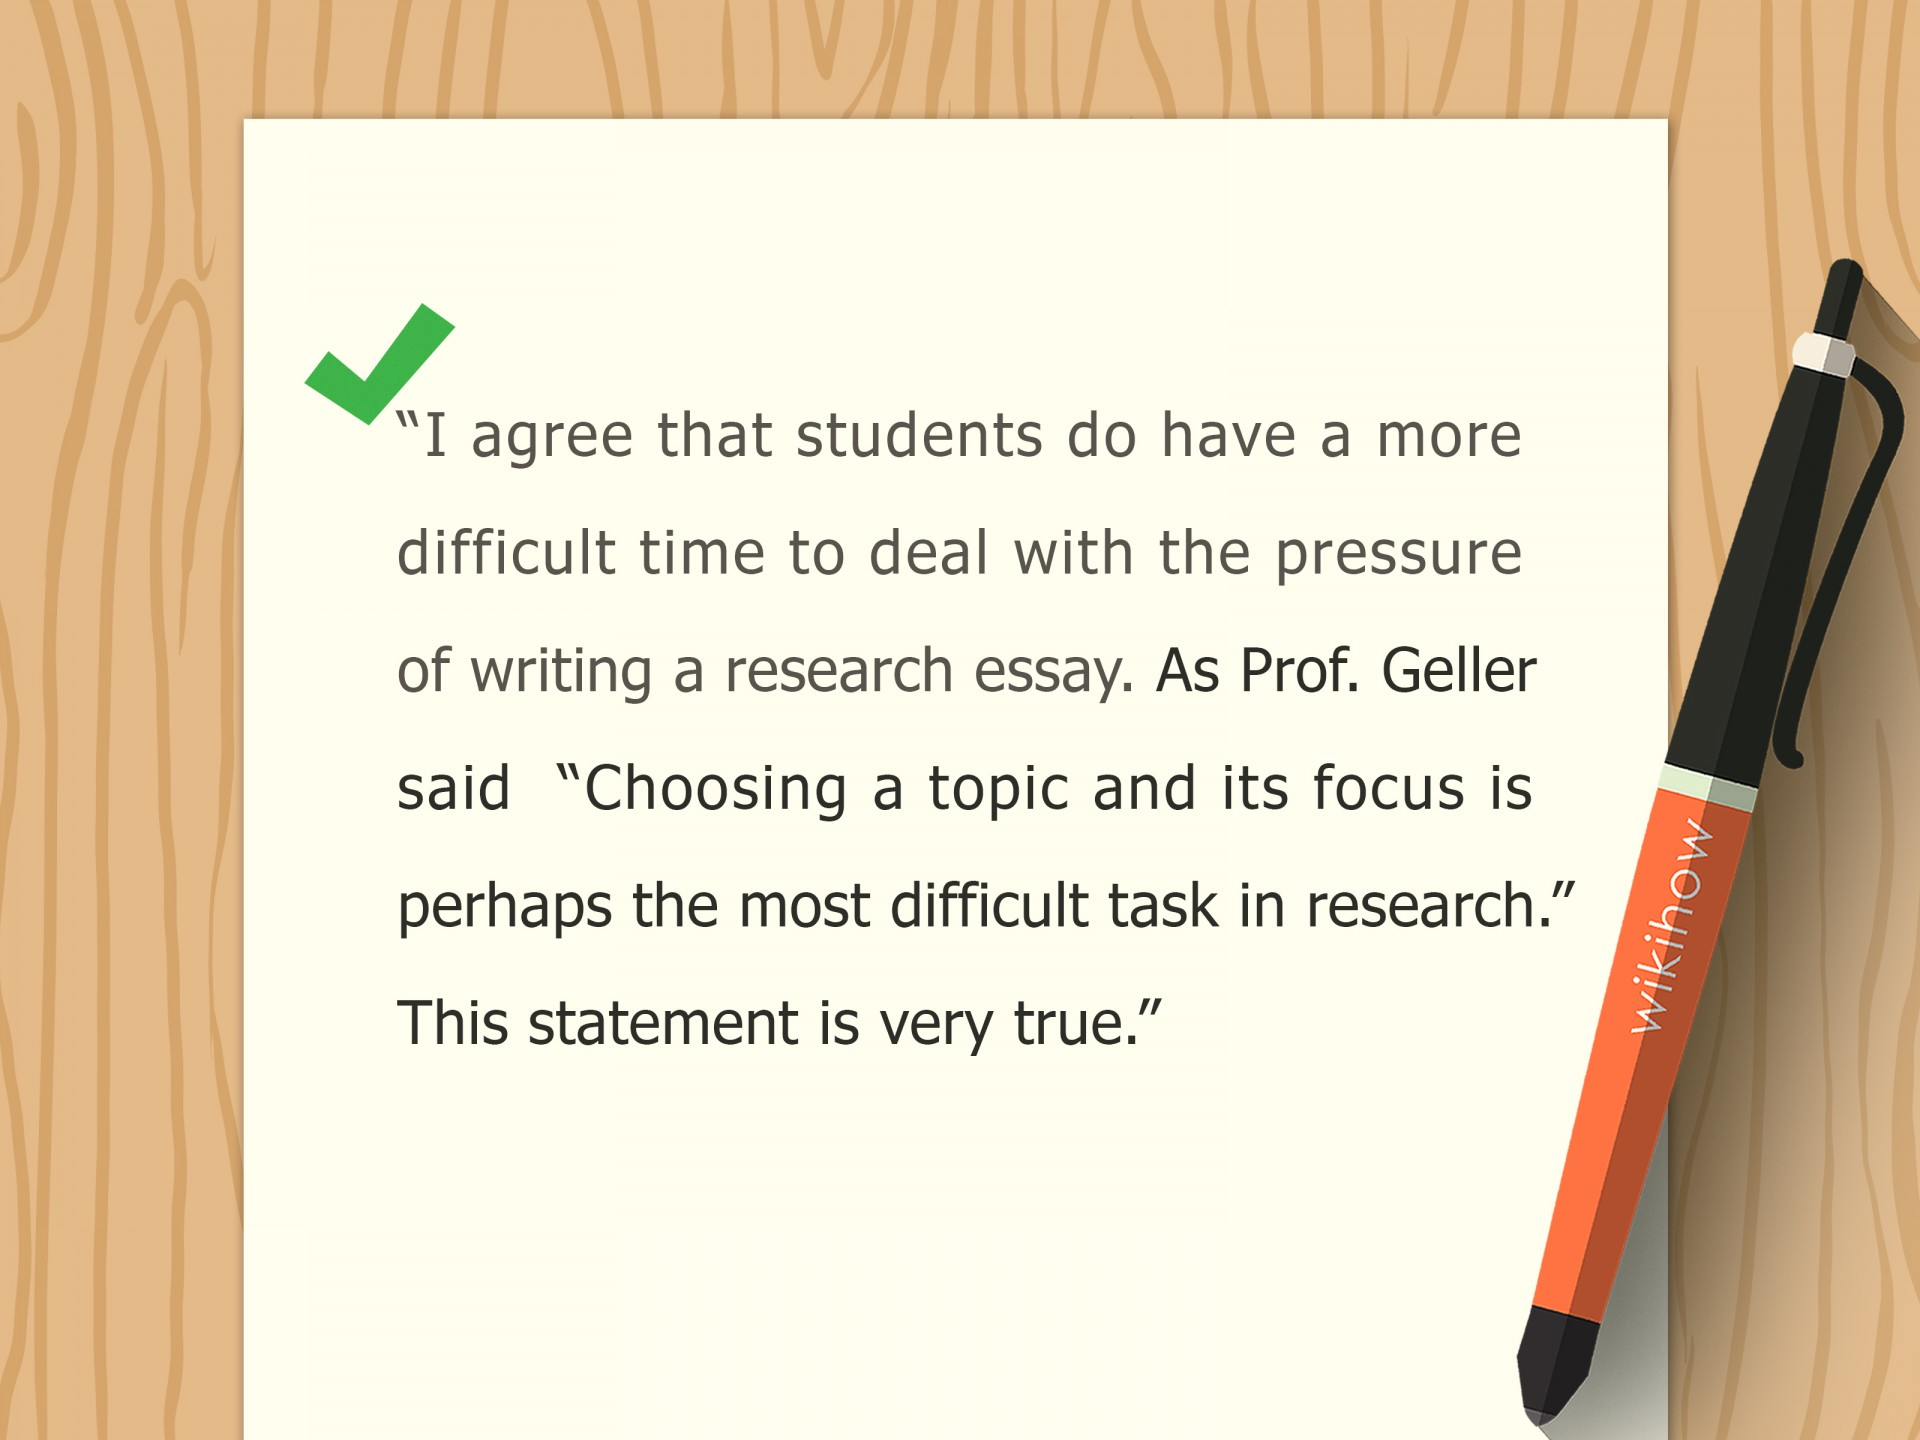 012 How Many Sentences Are In Essay Write Reflection Paper Step Version Best A 5 Paragraph Short 1920